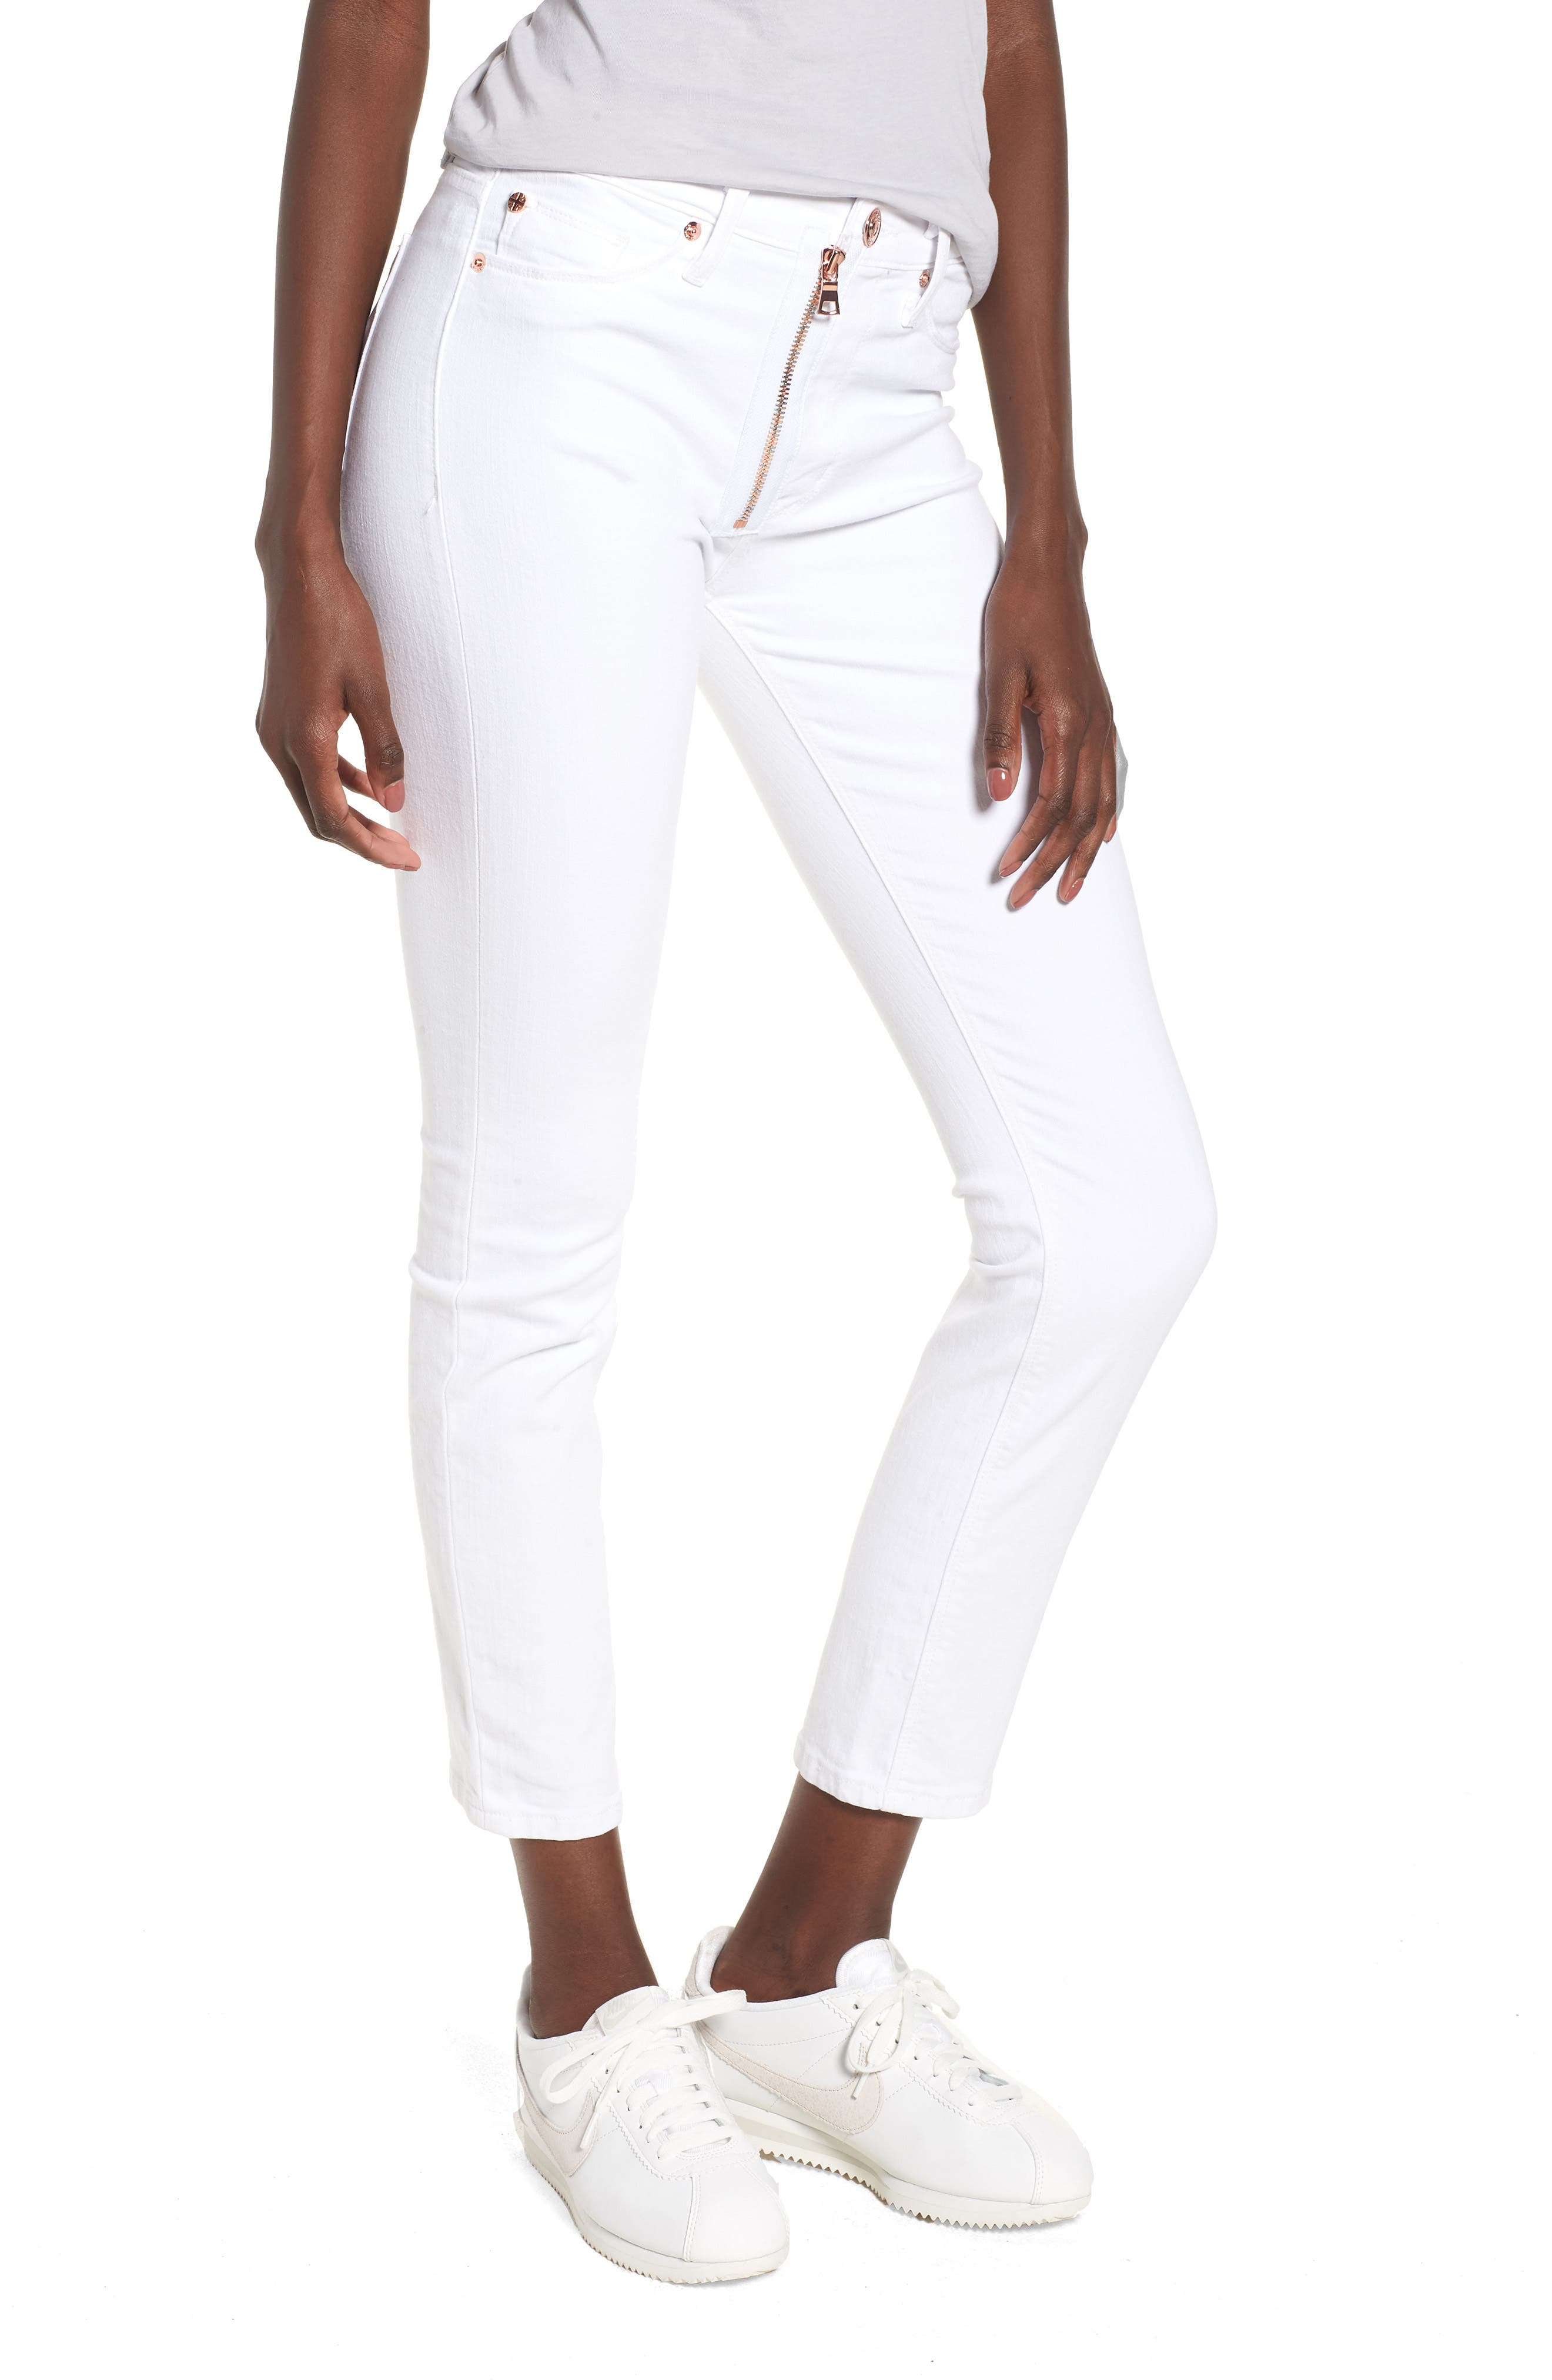 Barbara Exposed Zip High Waist Jeans,                         Main,                         color, Optical White